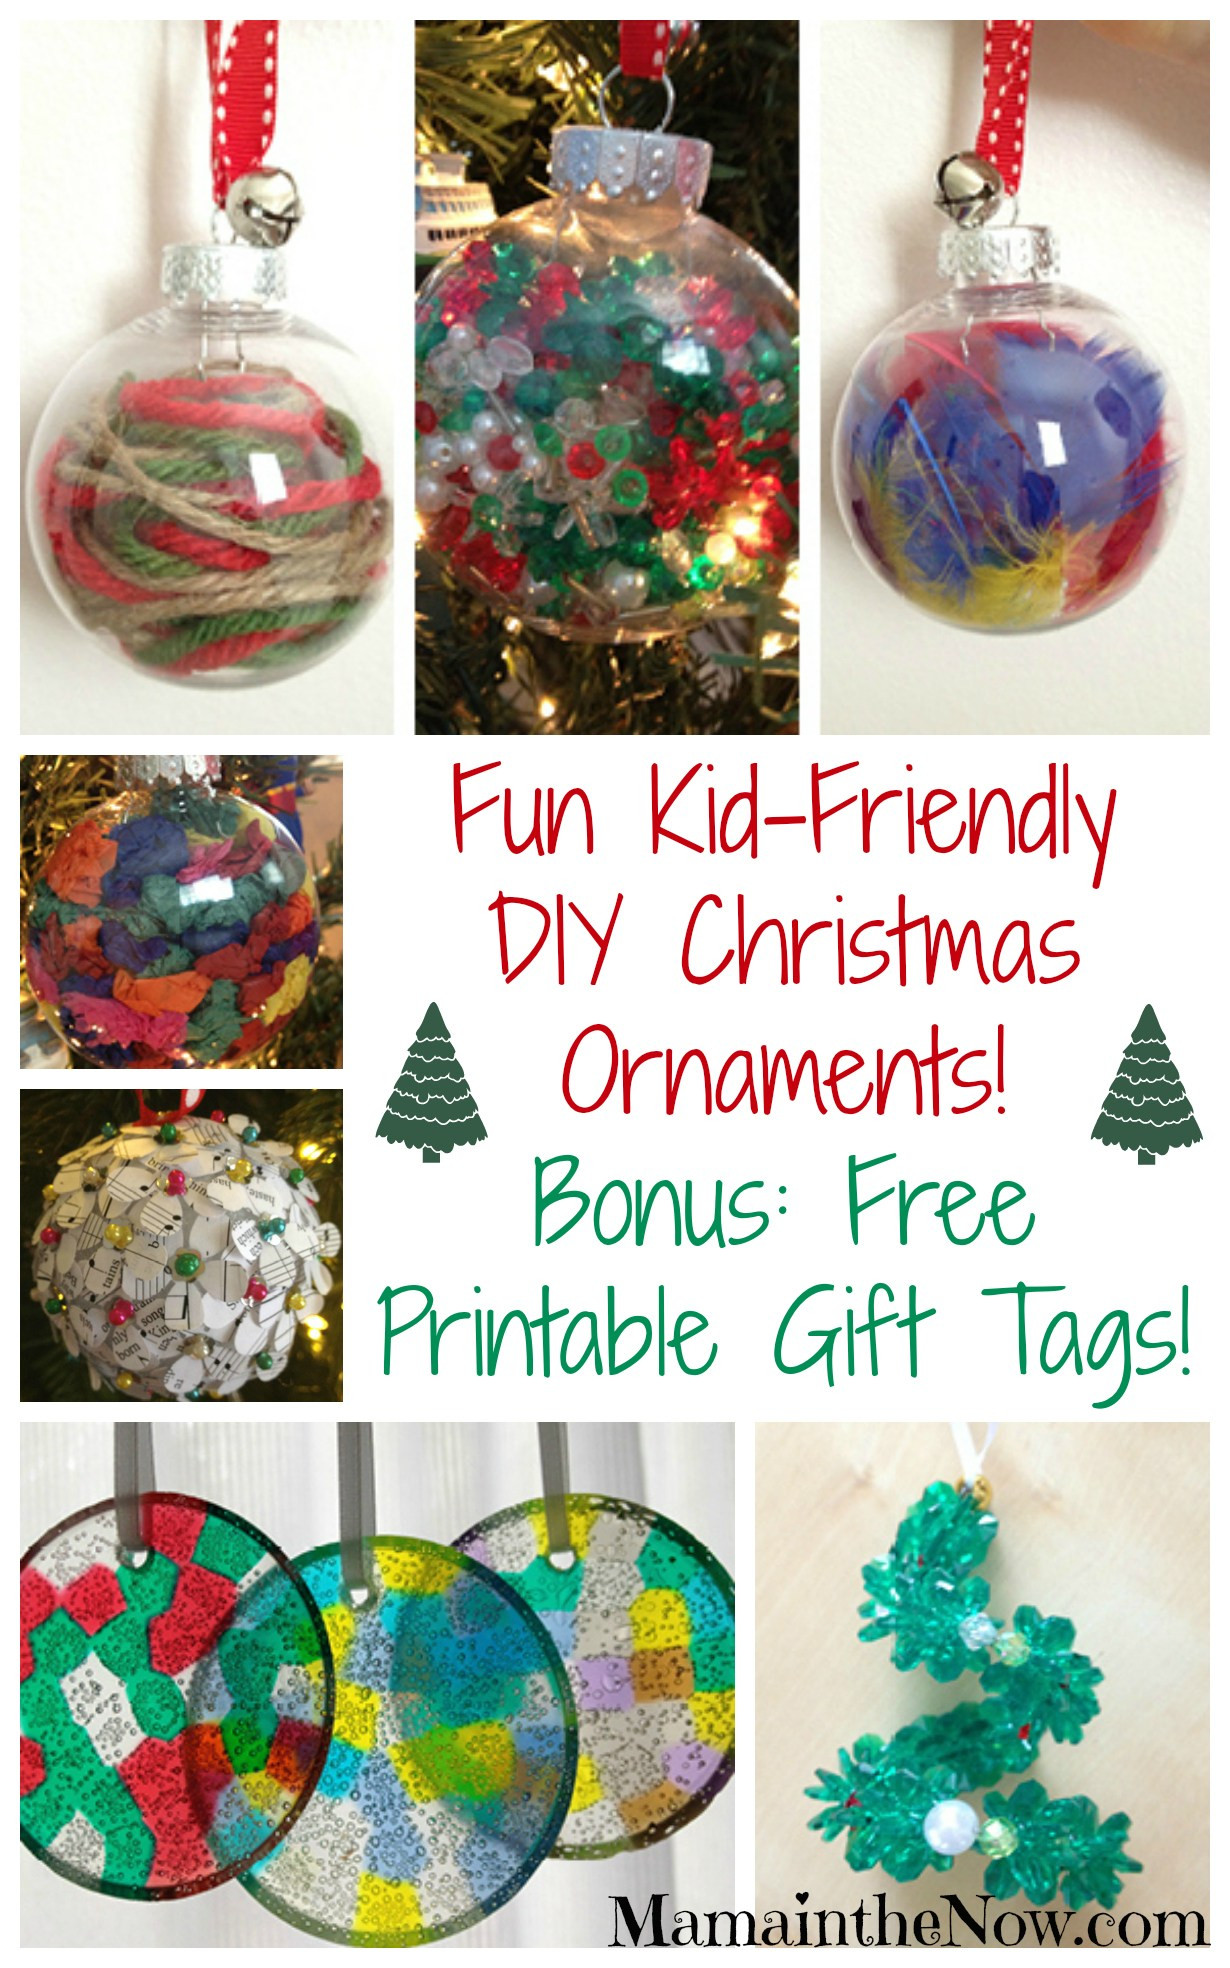 Best ideas about DIY Christmas Ornaments For Kids . Save or Pin Easy Kid Friendly DIY Christmas Ornaments Now.